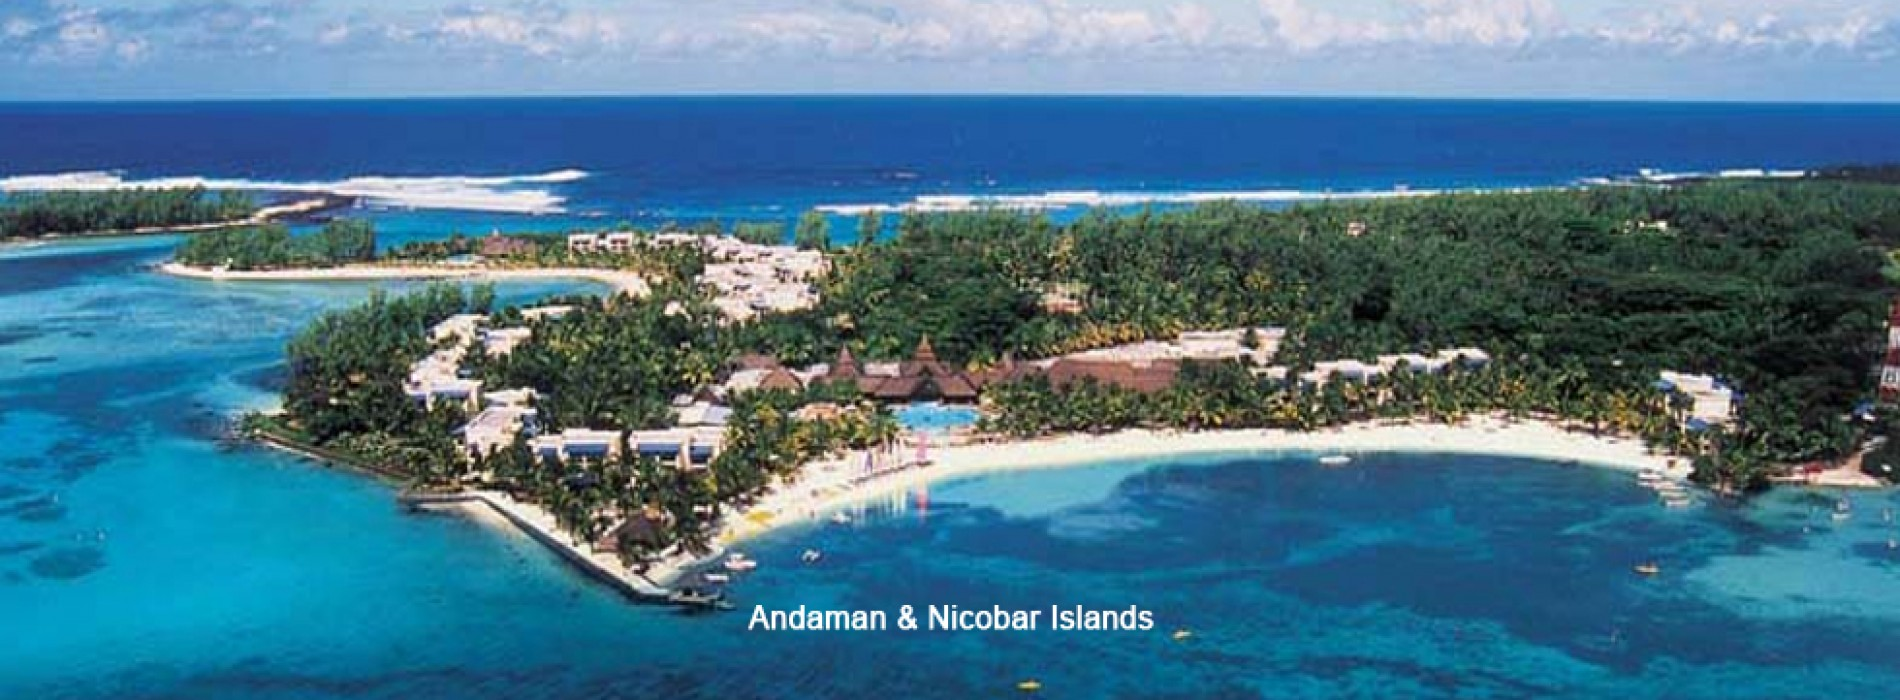 Private Beach Resorts In Andaman And Nicobar Islands